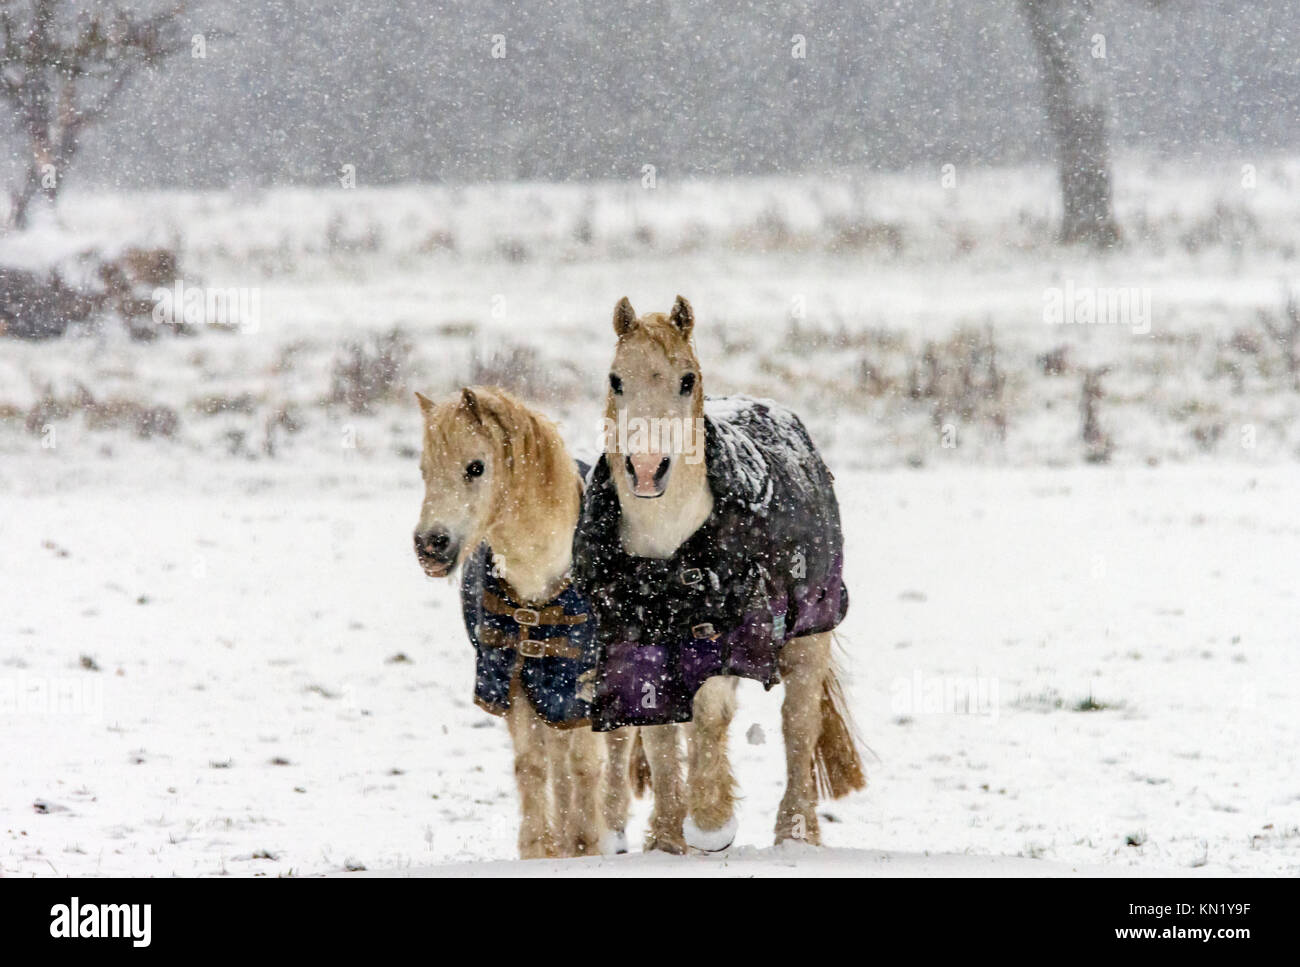 Burton Lazars December 10th 2017: Artic snow blast rescue horses enjoy the winter snow showers with fun and forlics, - Stock Image